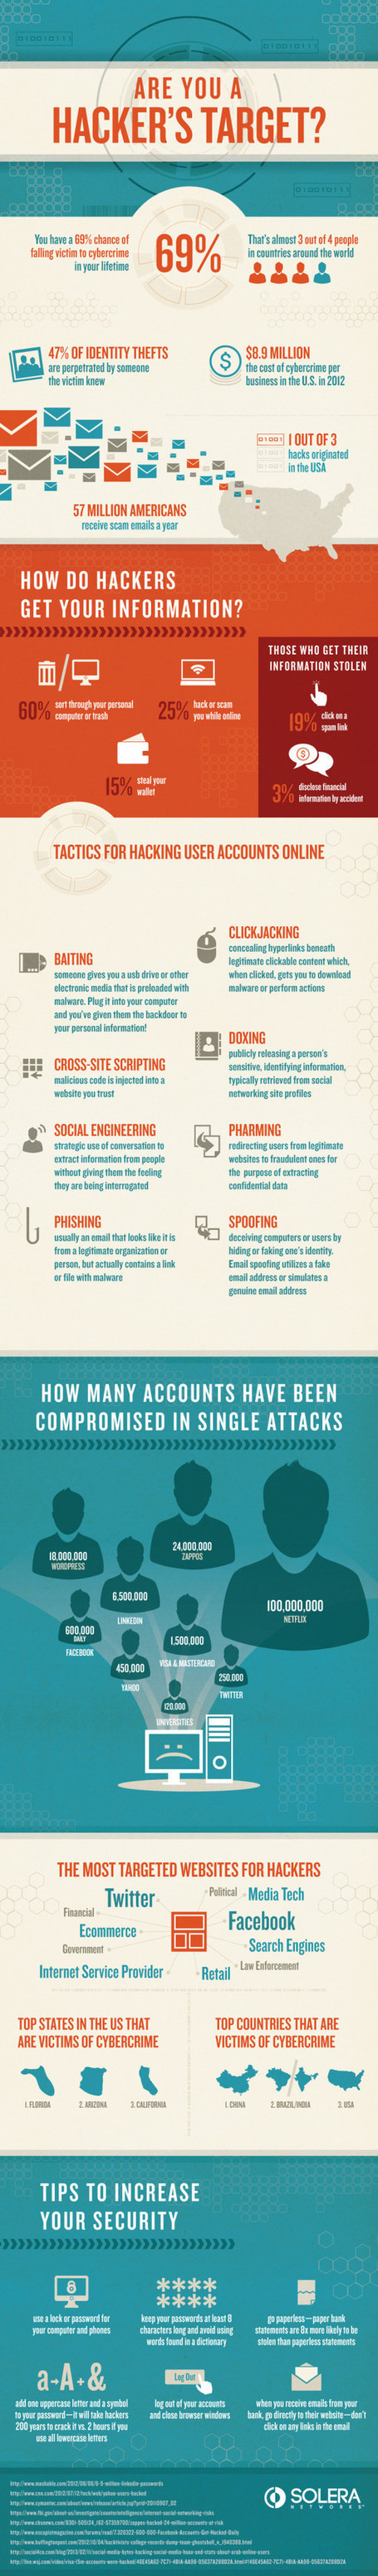 "Are you a hacker's target? [infographic] | ""#Google+, +1, Facebook, Twitter, Scoop, Foursquare, Empire Avenue, Klout and more"" 